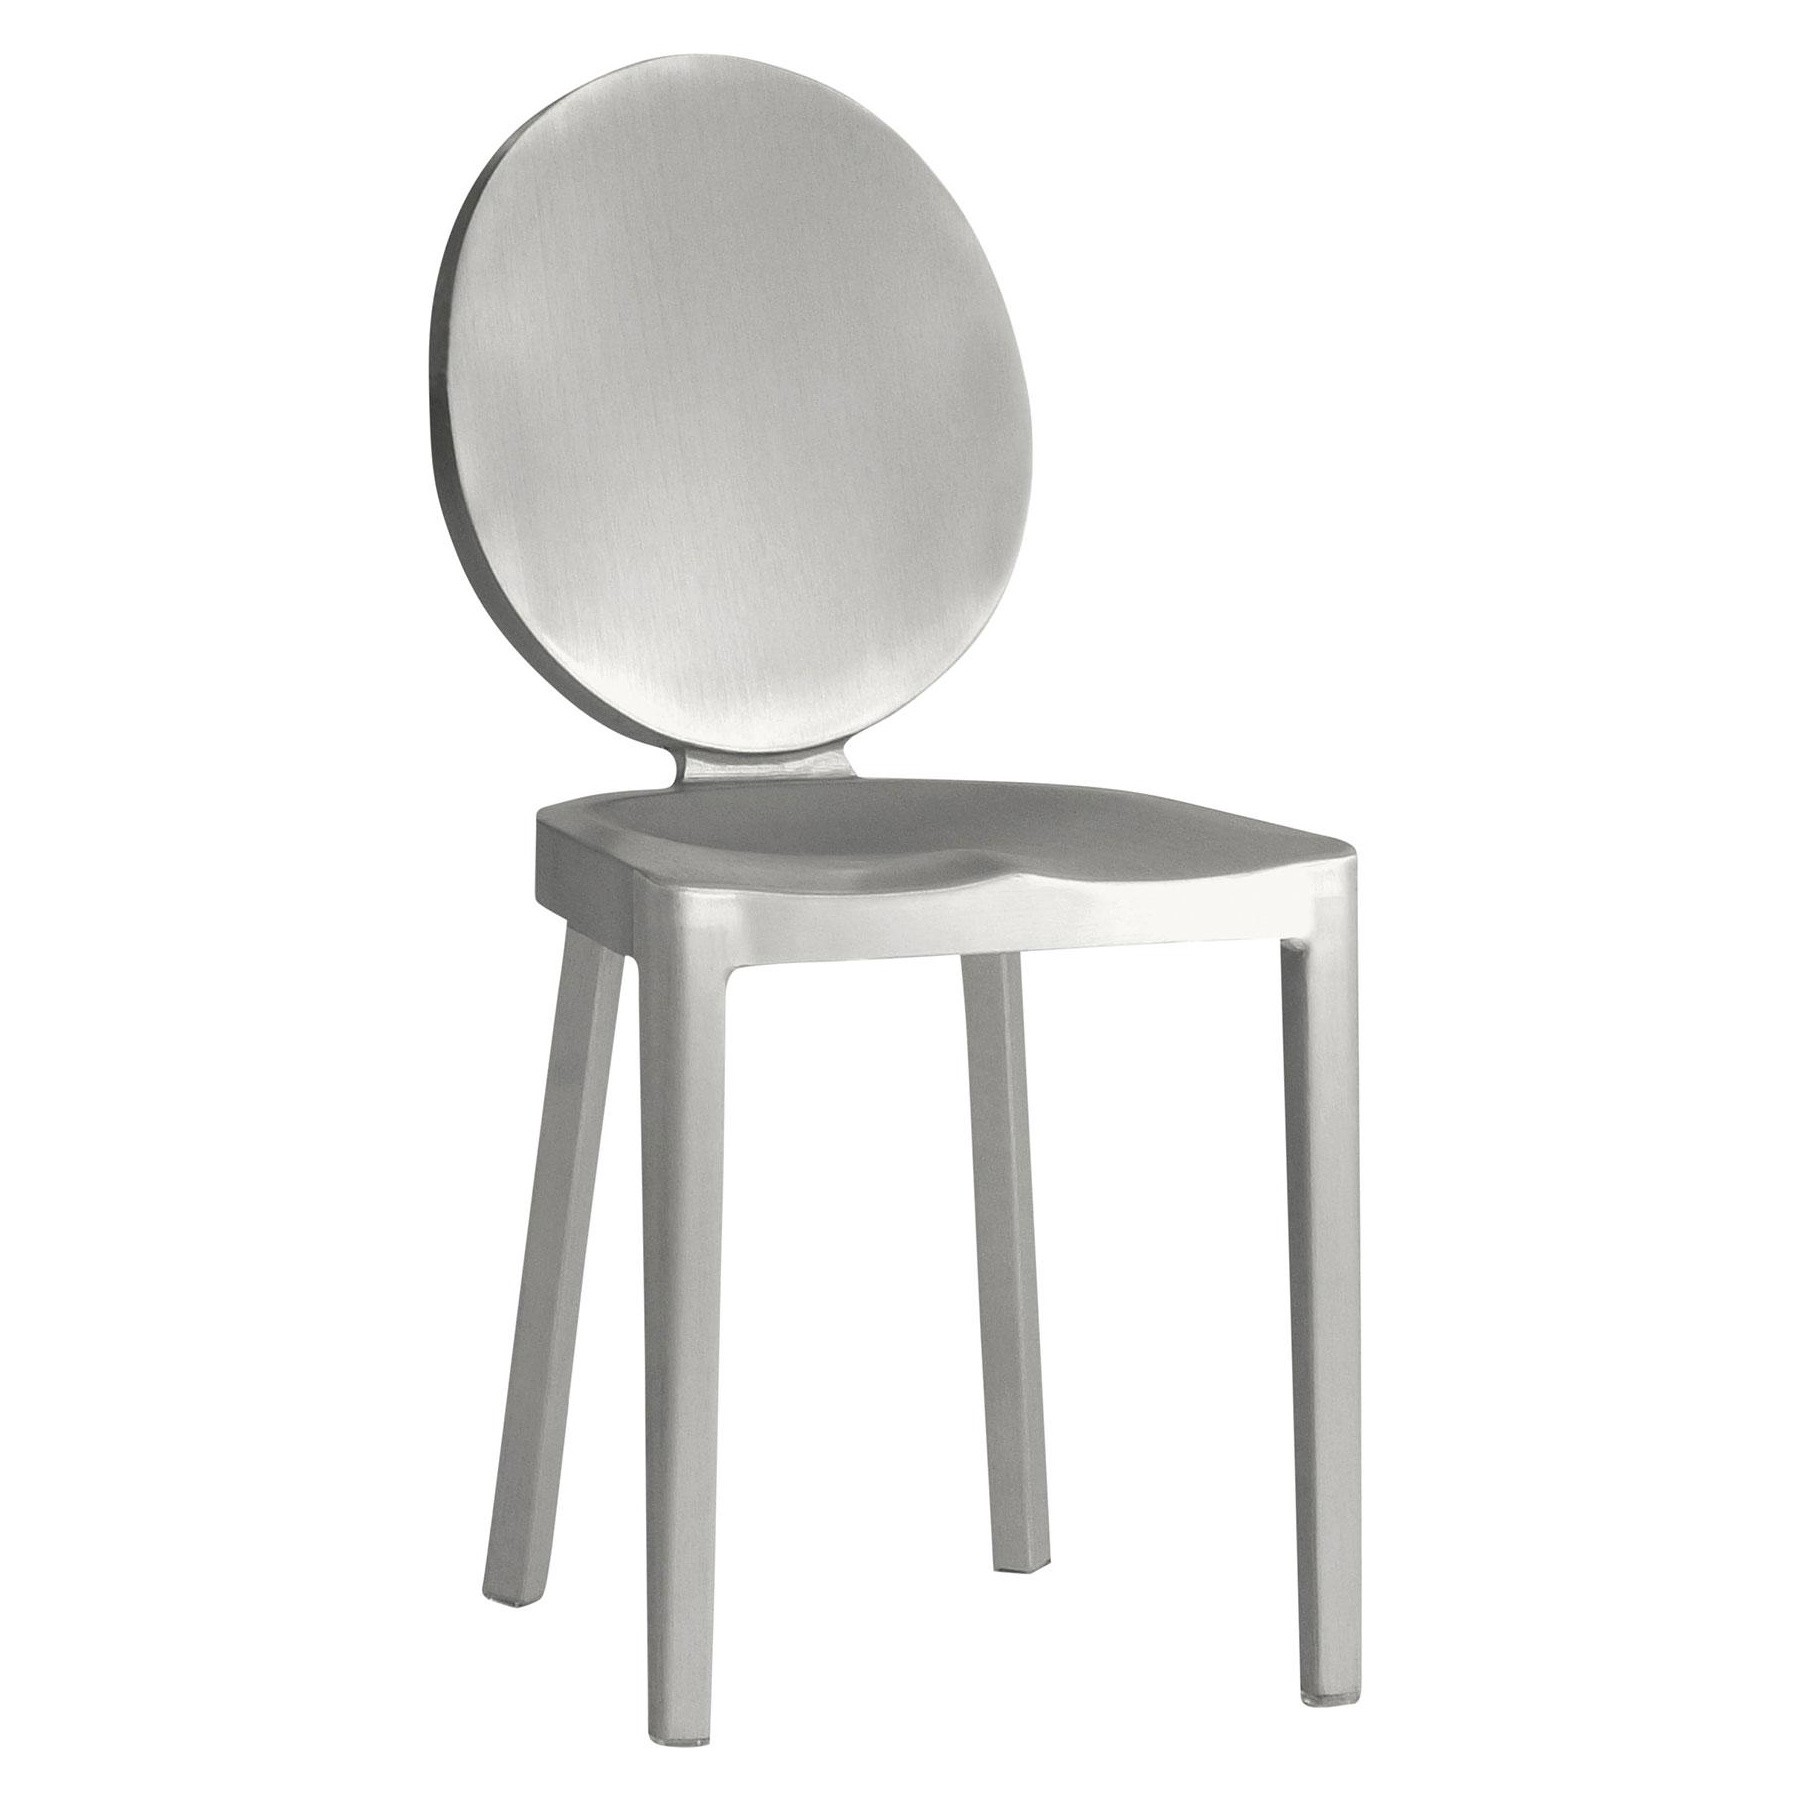 emeco kong chair ambientedirect rh ambientedirect com